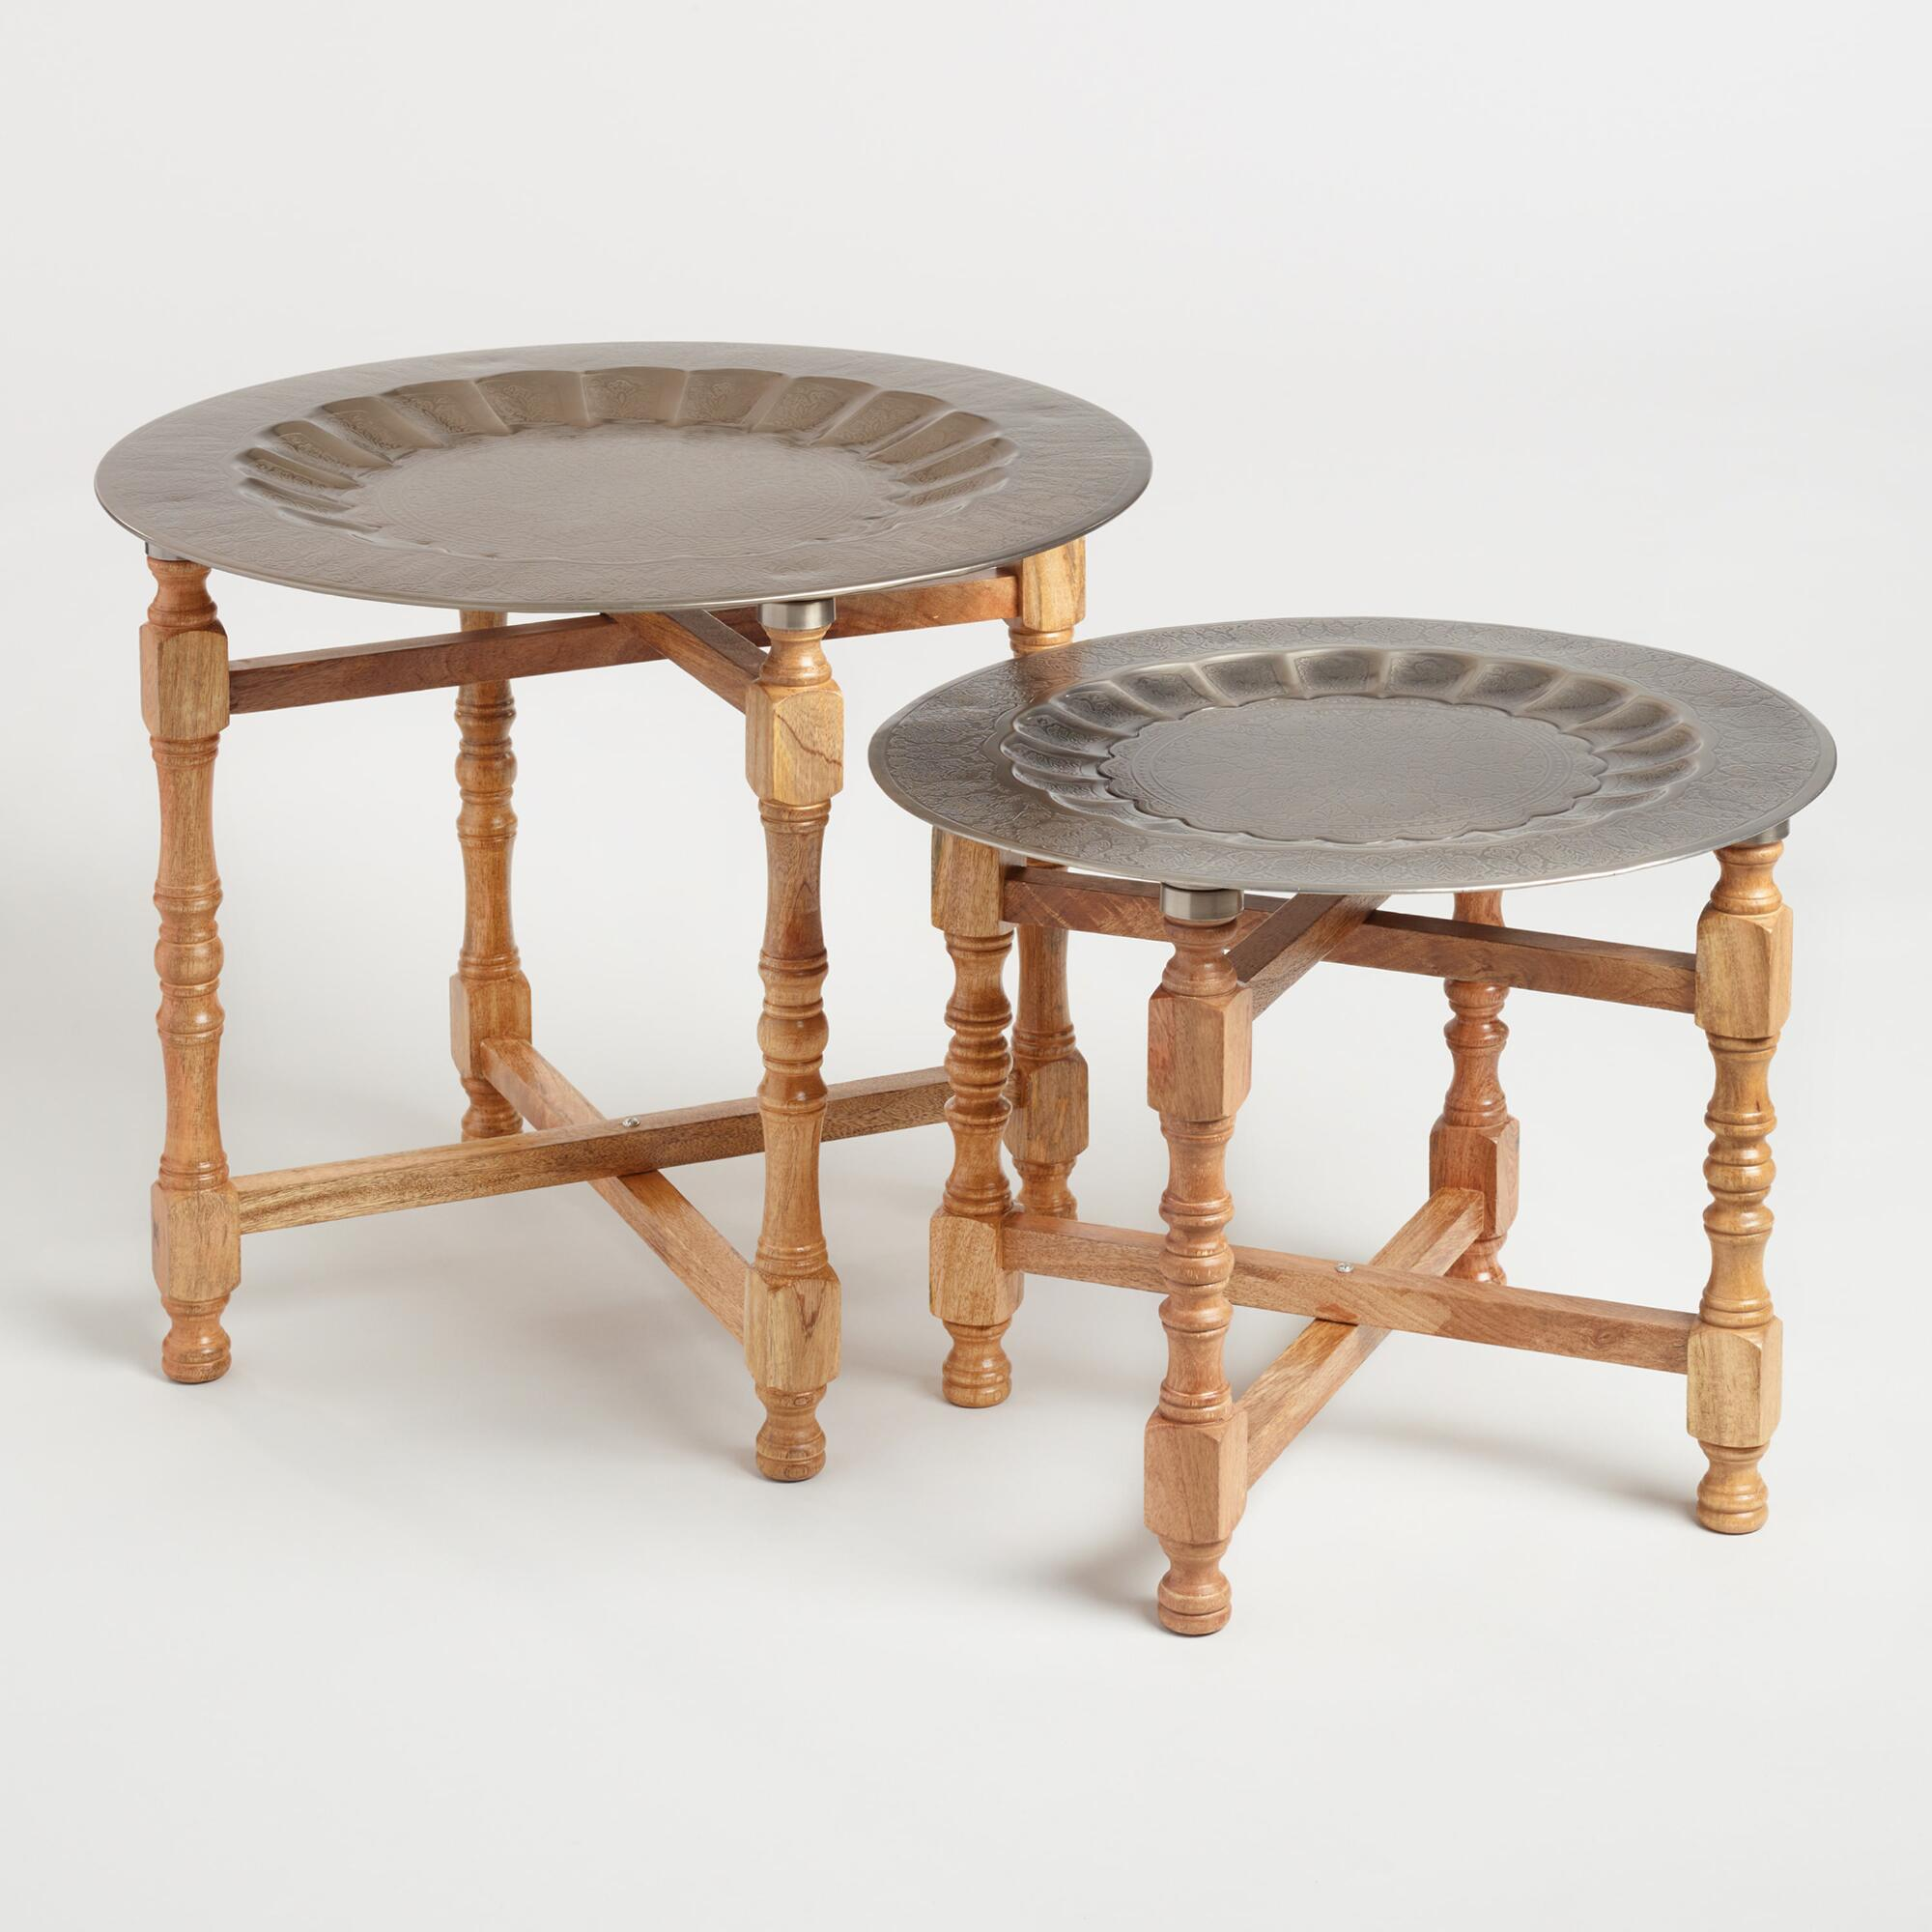 kentish com coffee with marble brass stools luxdeco circular table